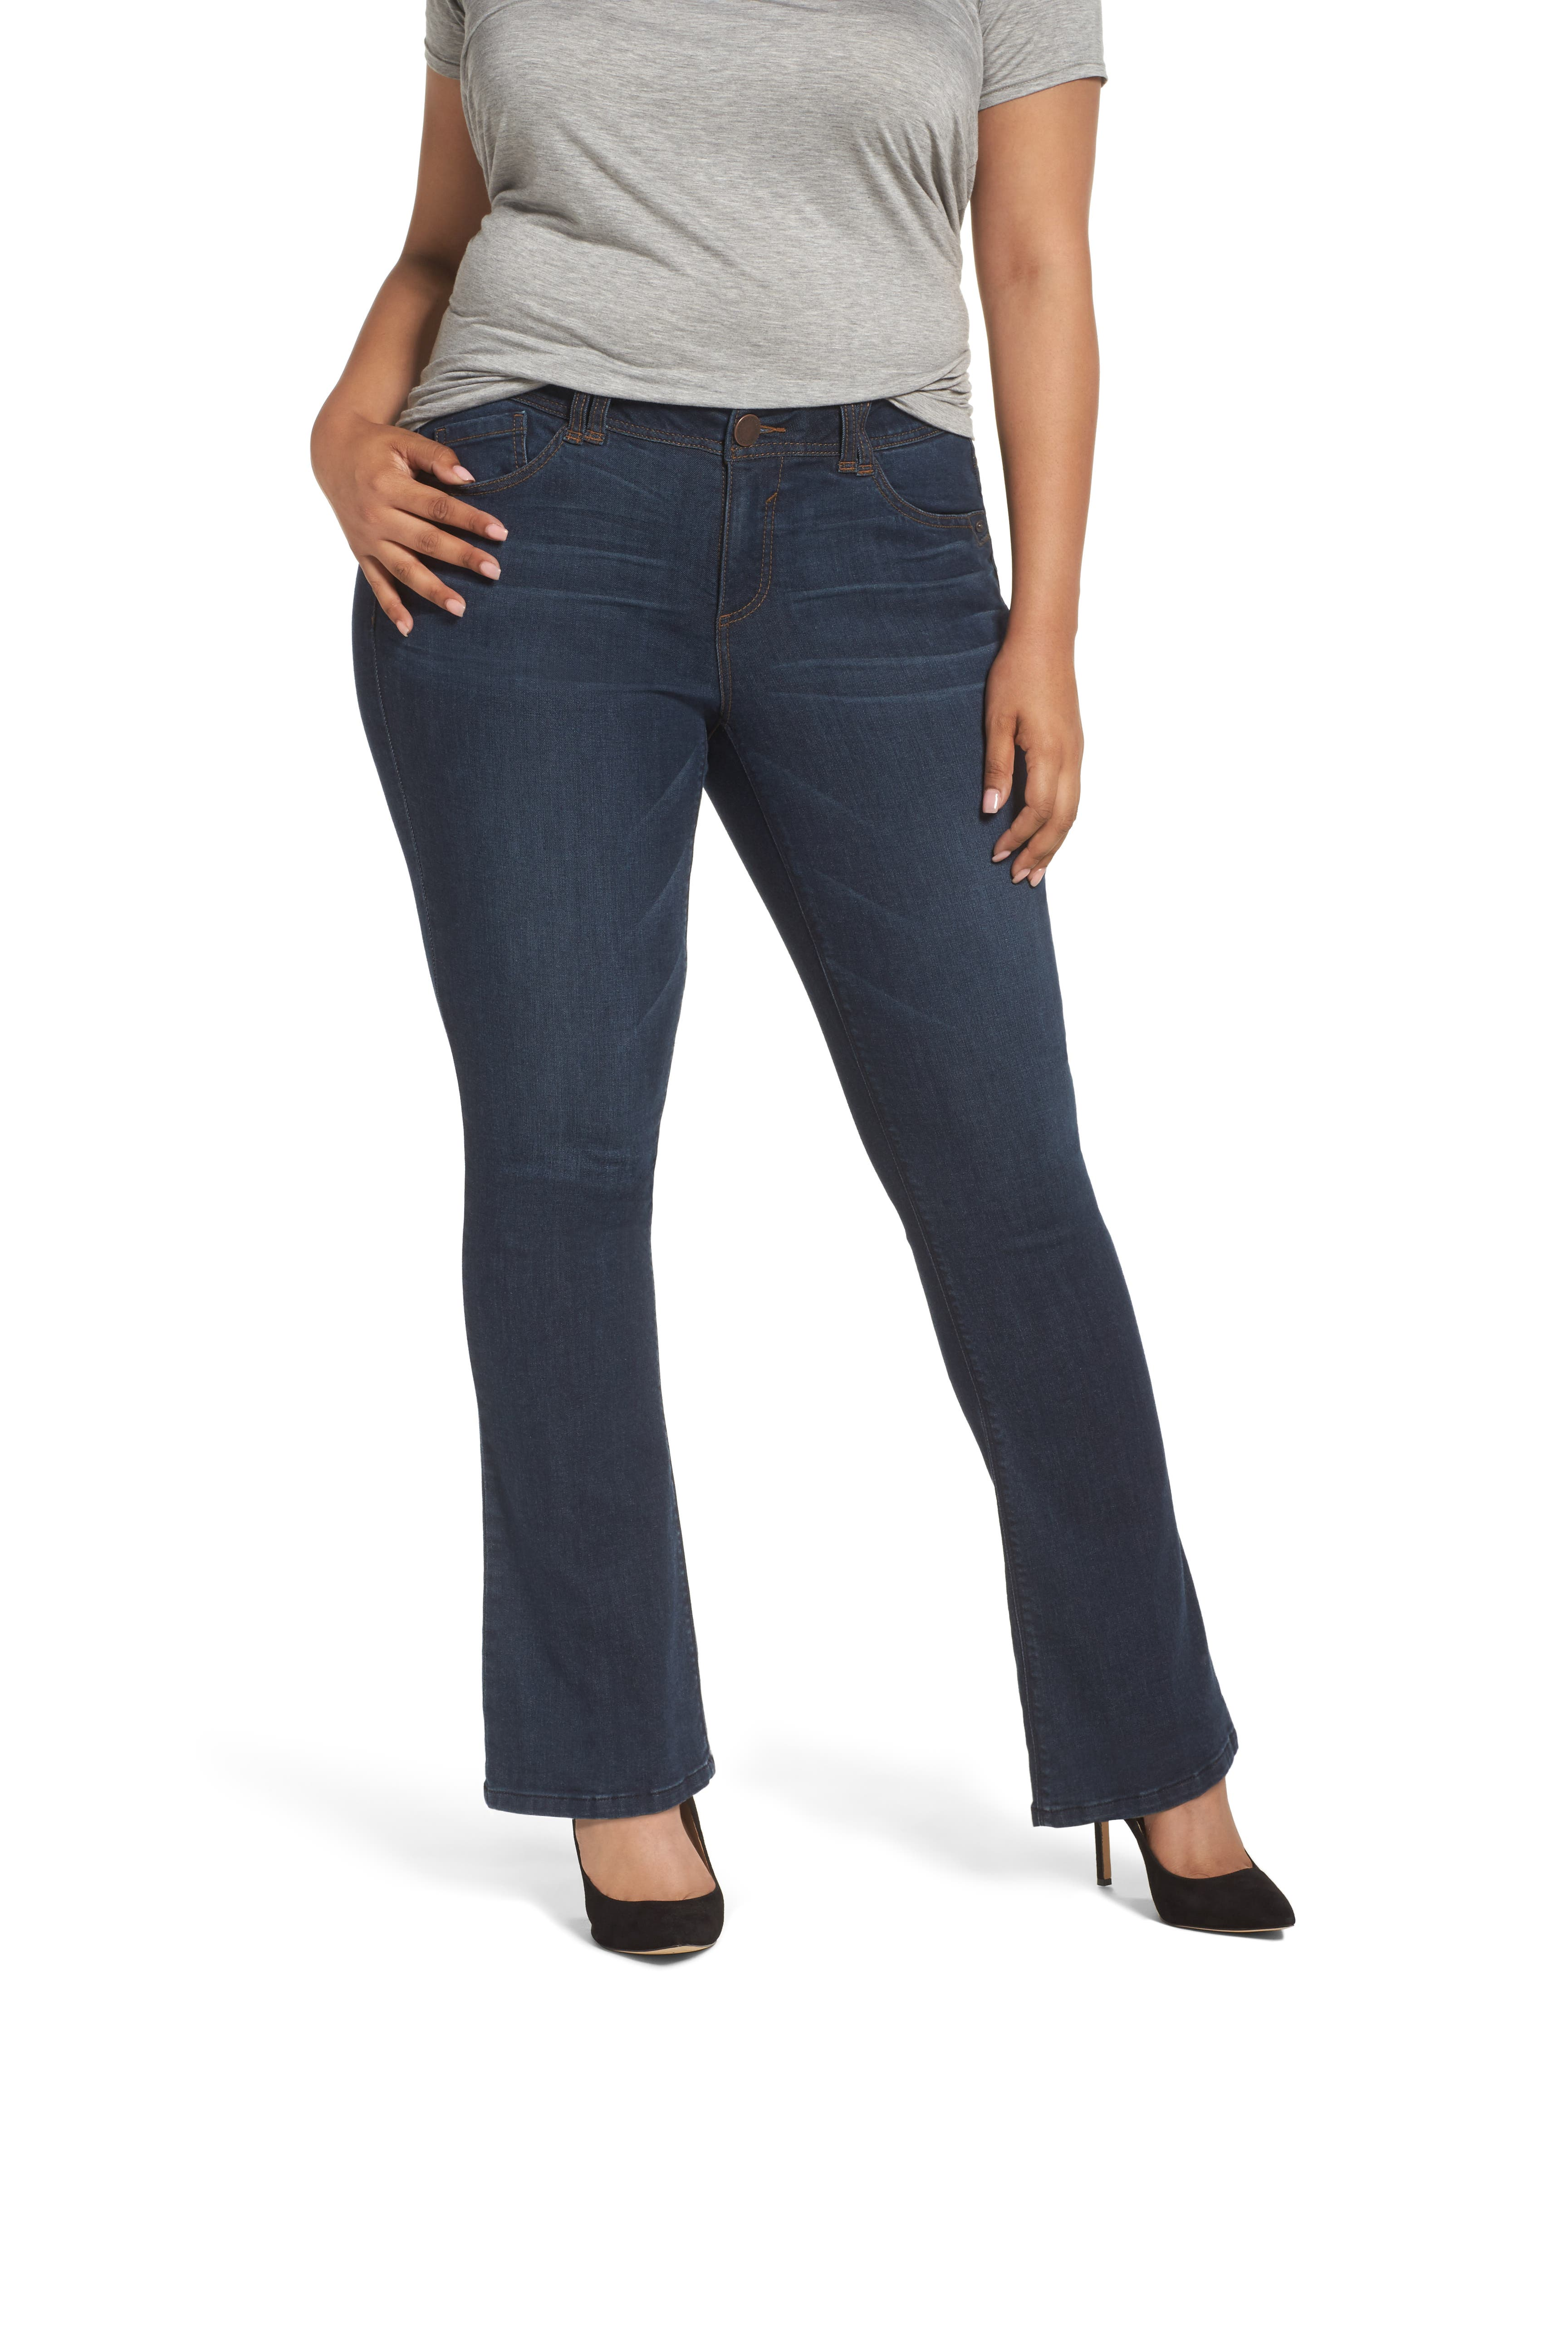 Main Image - Wit & Wisdom Ab-solution Itty Bitty Bootcut Jeans (Plus Size) (Nordstrom Exclusive)